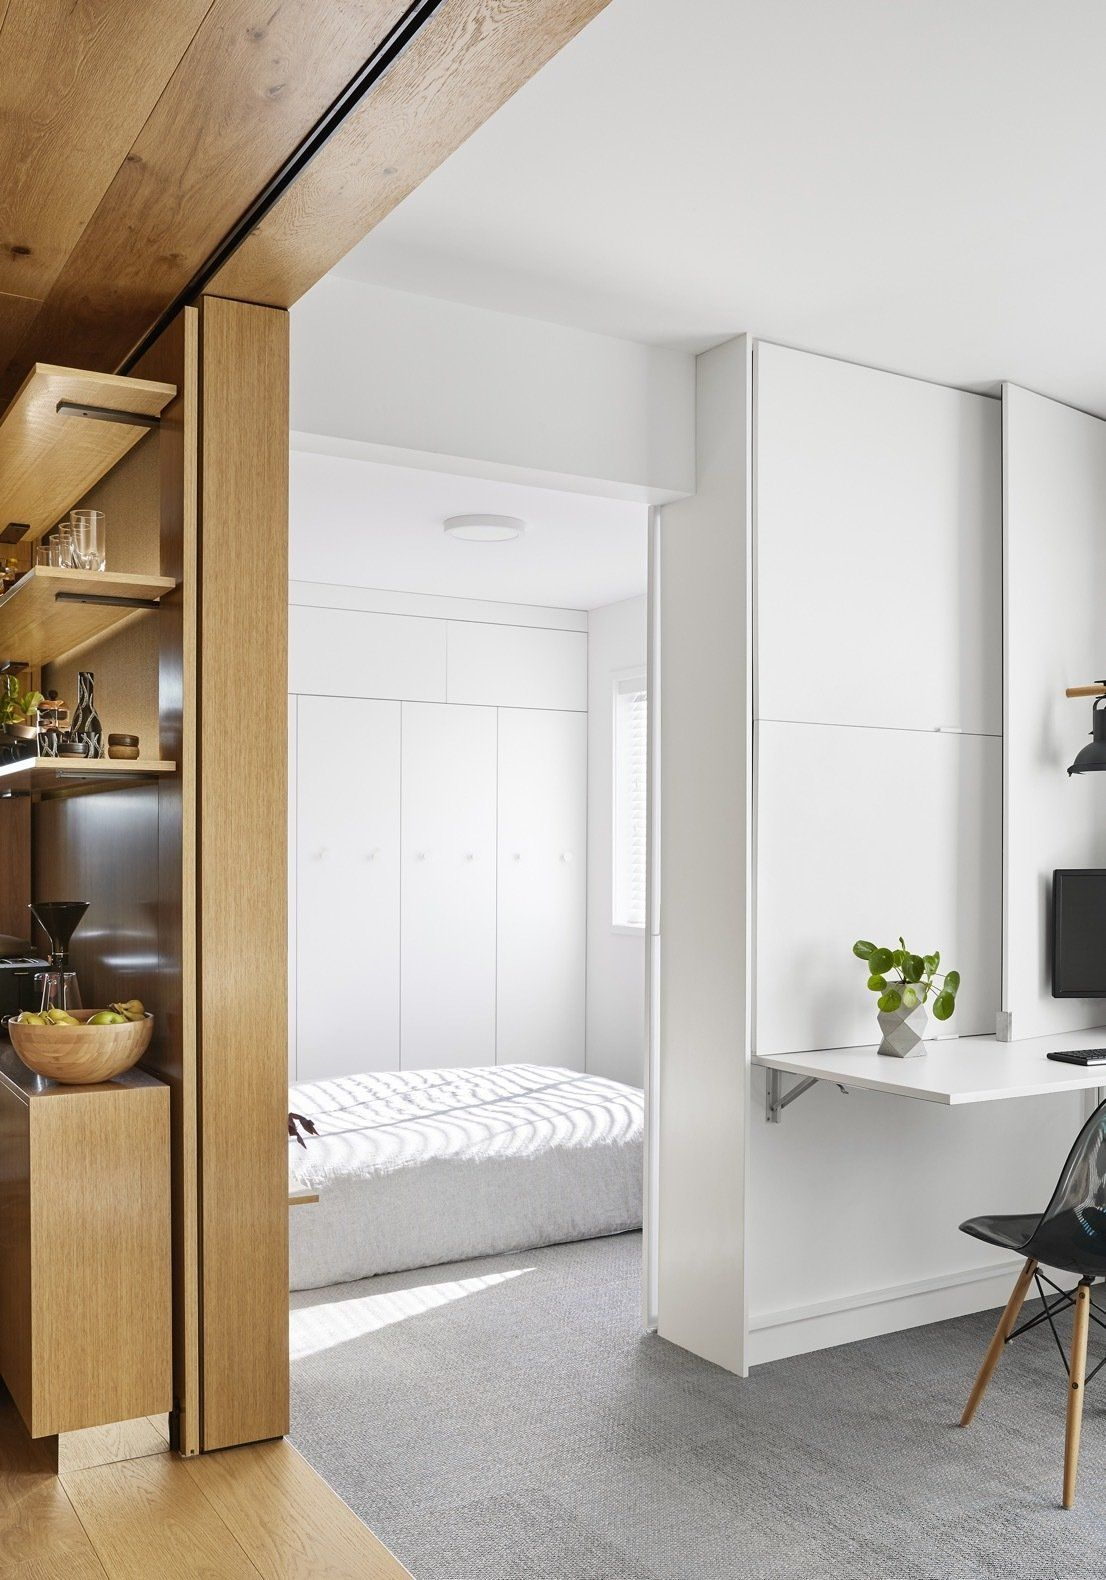 The bedroom is a separate area but still looks connected to the social area